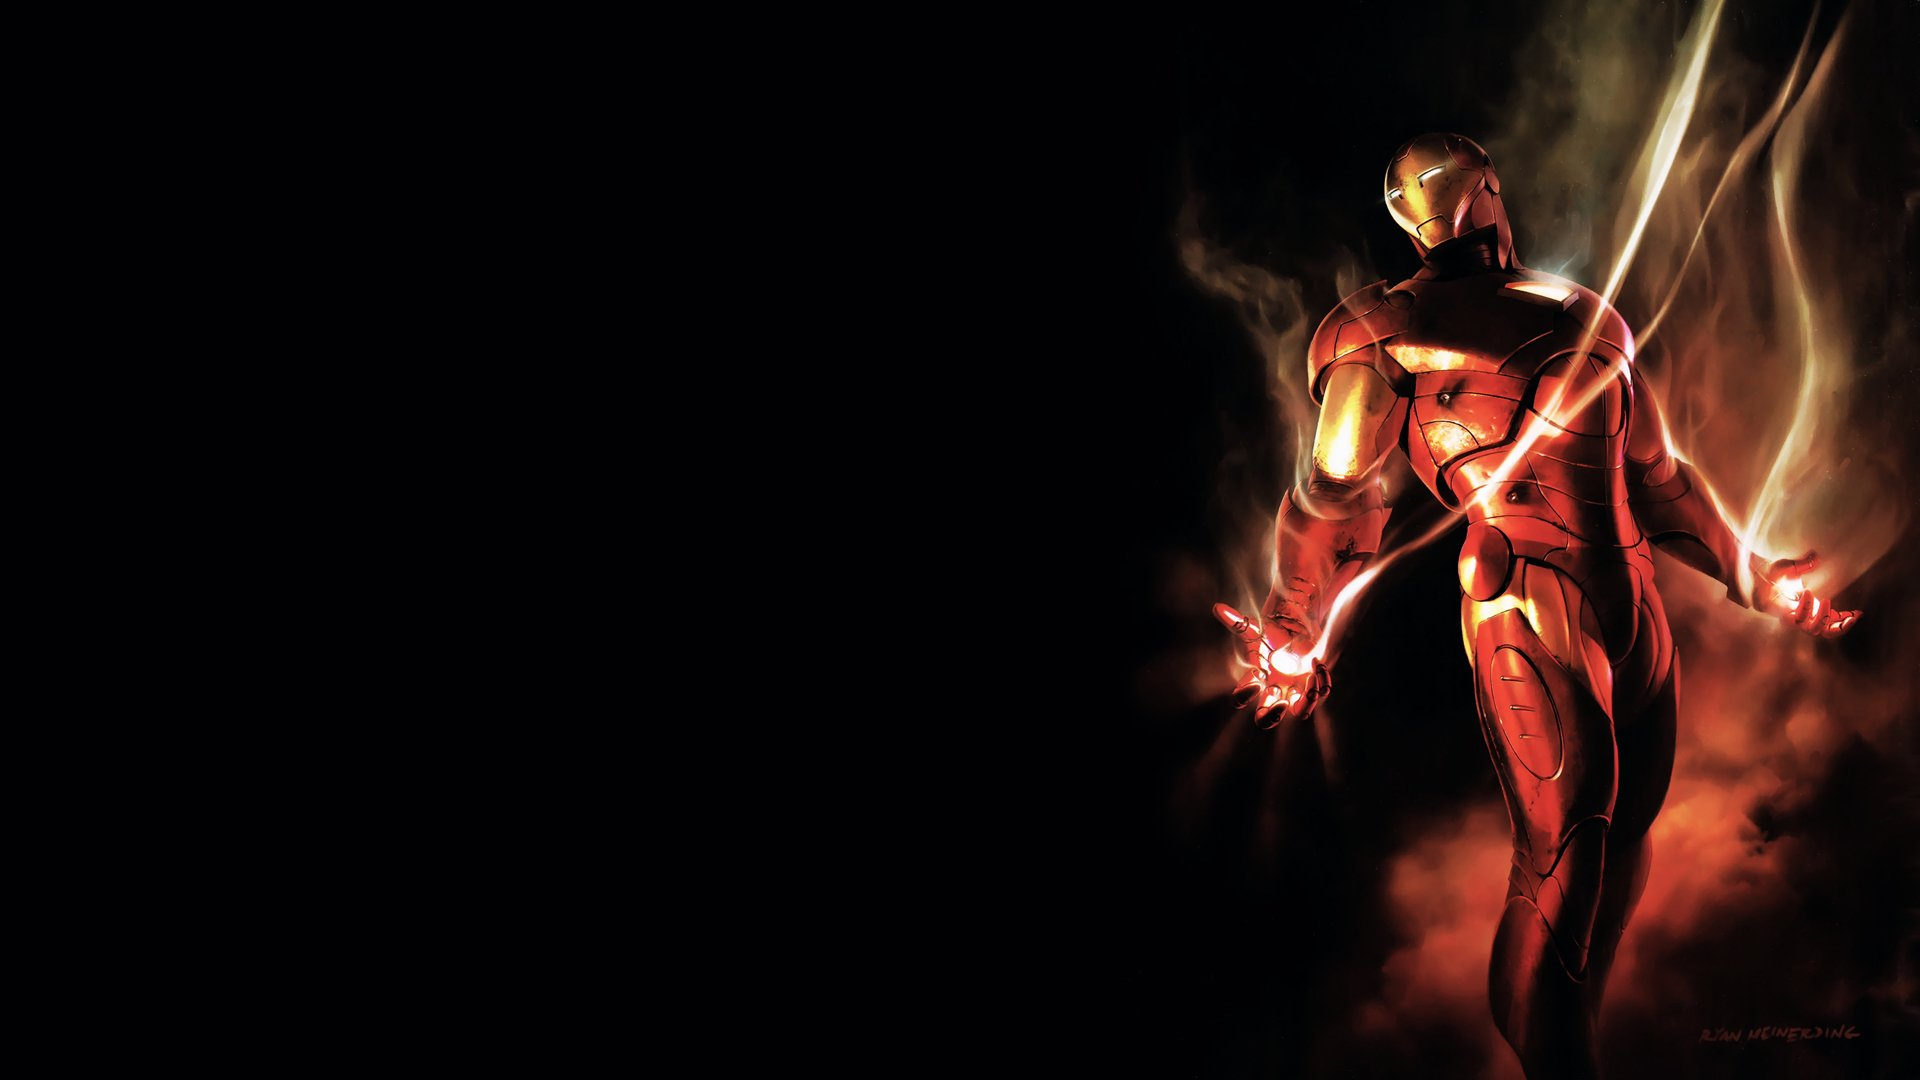 35 Iron Man Hd Wallpapers For Desktop: HD Wallpapers 1080p Marvel